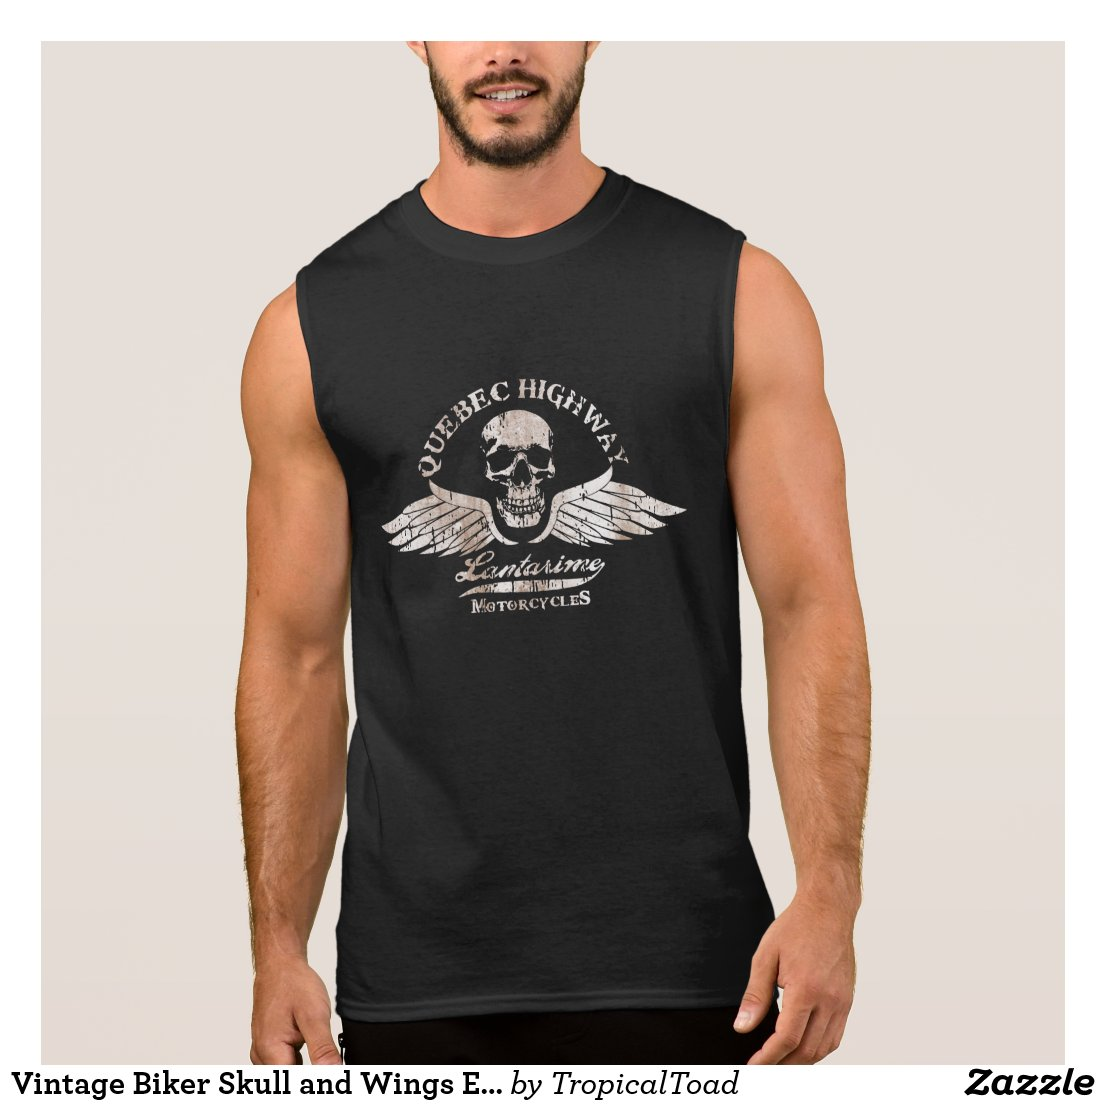 Vintage Biker Skull and Wings Emblem Sleeveless Shirt